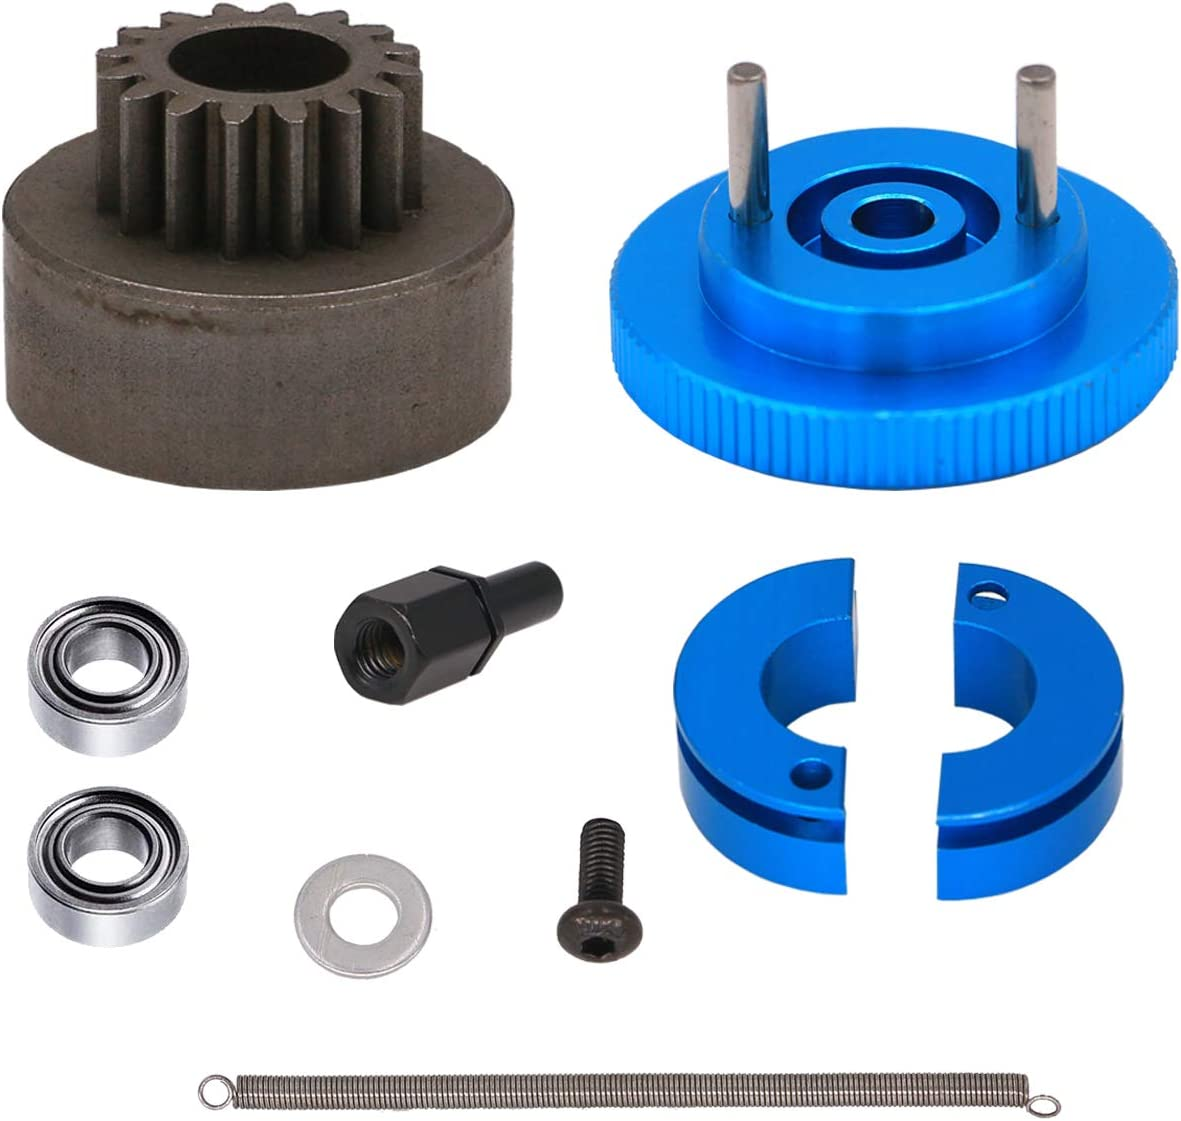 Treehobby 16T Flywheel Clutch Bell Ball Set HSP Same day shipping for Sales of SALE items from new works Bearings 9